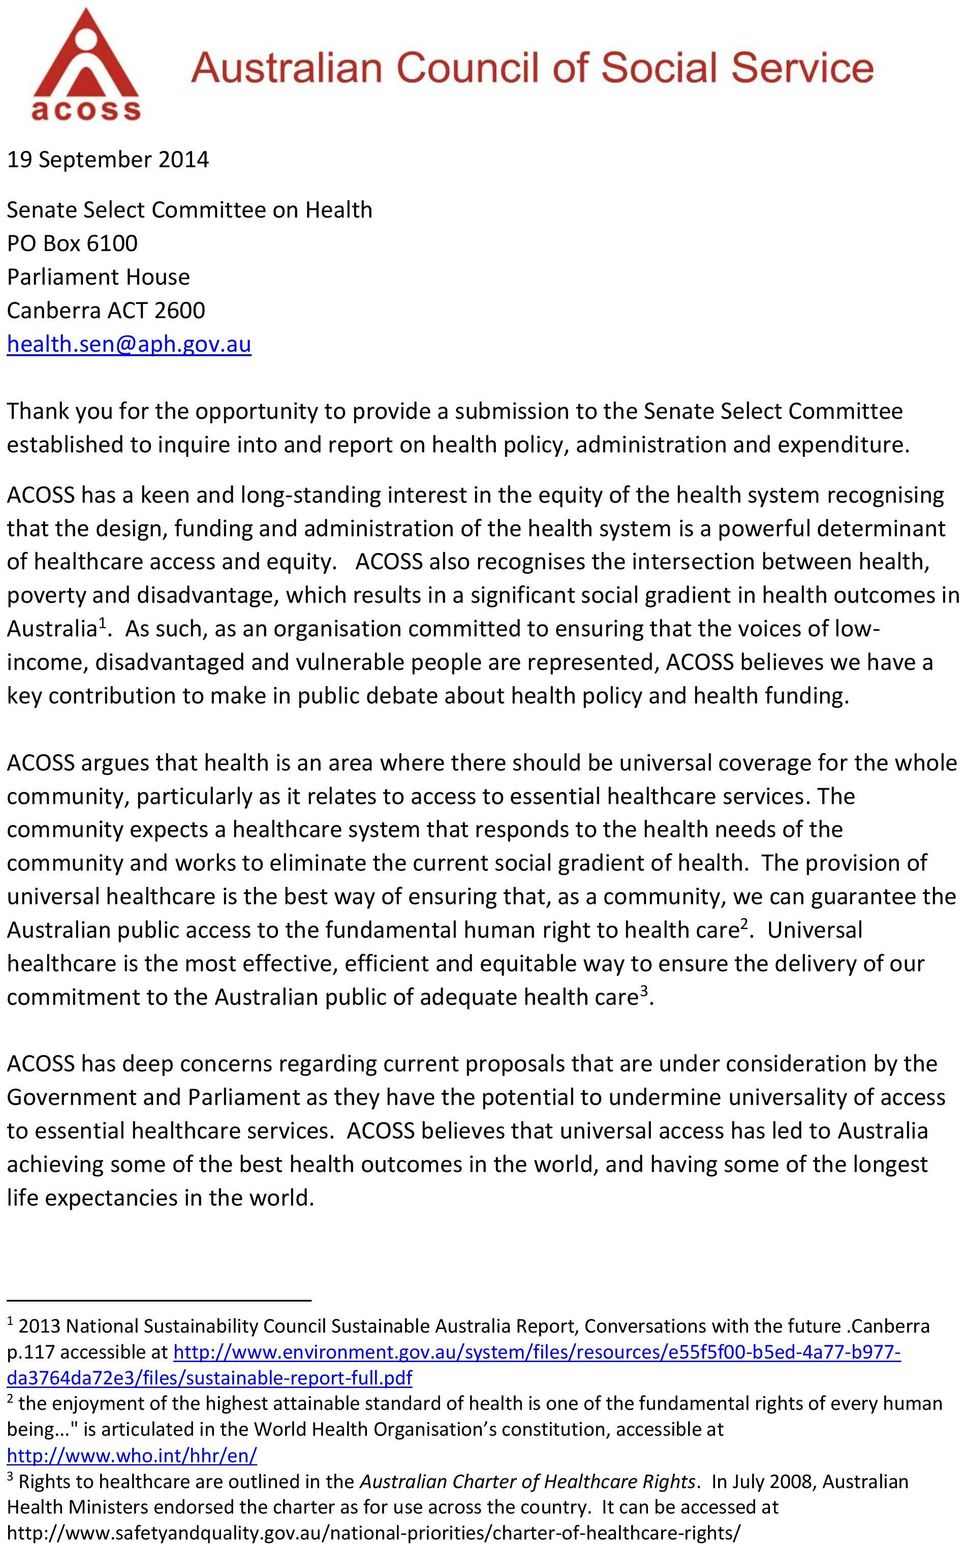 ACOSS has a keen and long-standing interest in the equity of the health system recognising that the design, funding and administration of the health system is a powerful determinant of healthcare